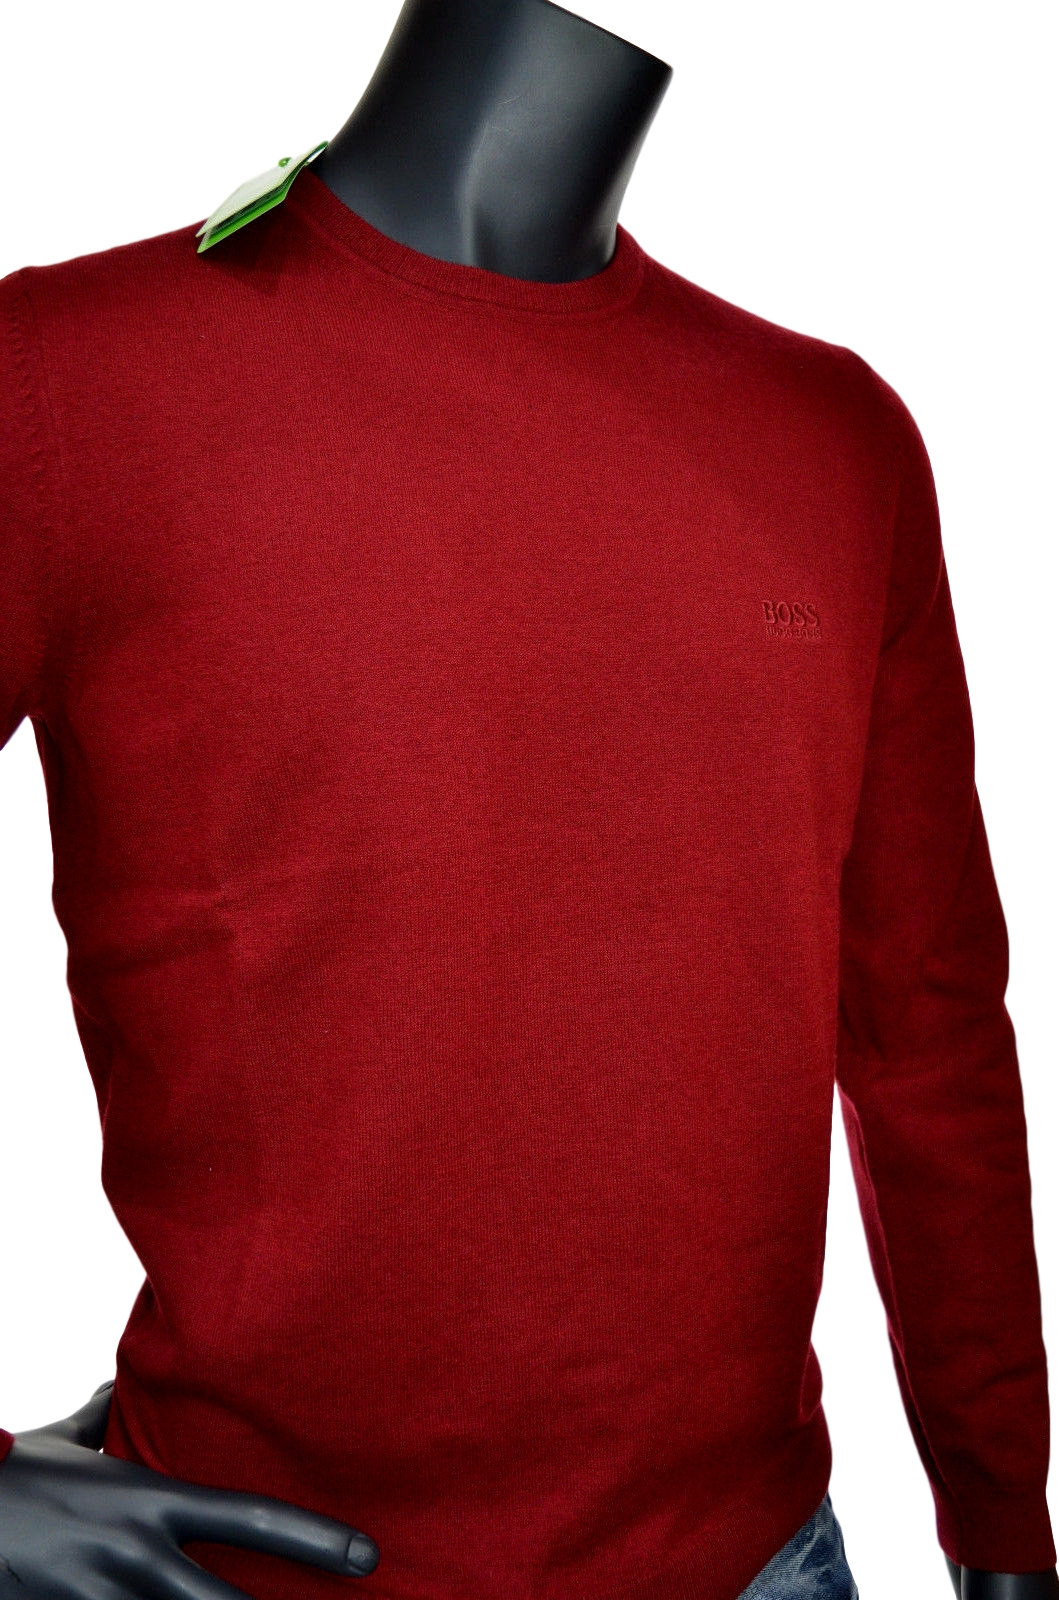 HUGO BOSS MAGLIA REGULAR FIT TAGLIA XXXL LAMBSWOOL C-CECIL_03 50374869 BORDO